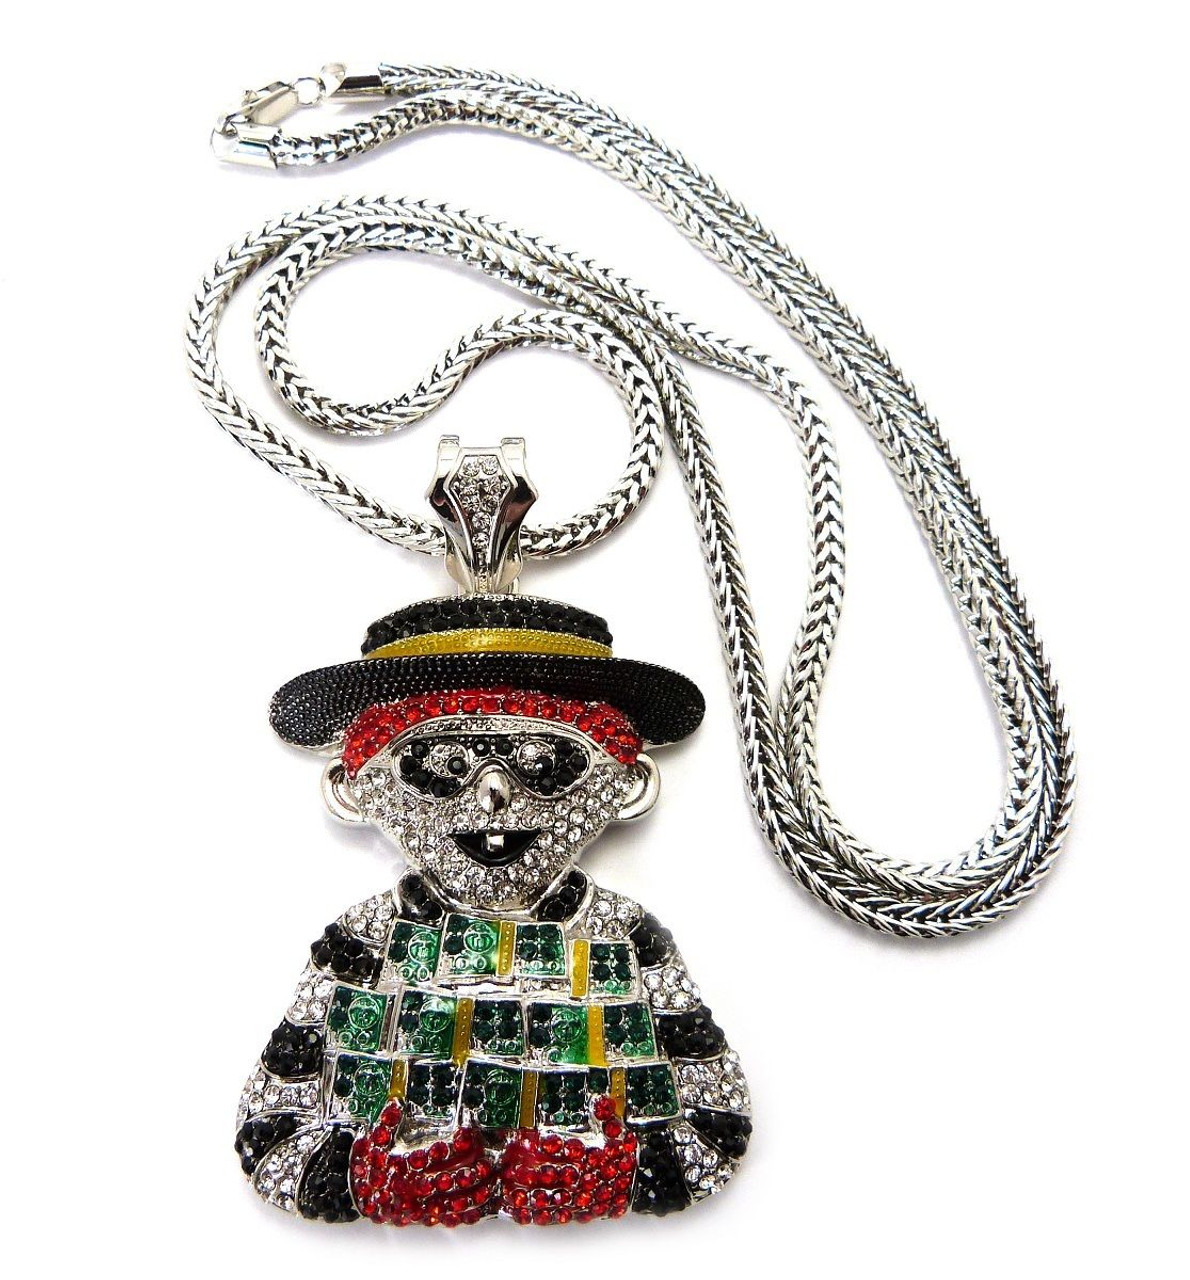 Iced out hamburglar pendant franco chain the black bat iced out hamburglar pendant franco chain aloadofball Choice Image